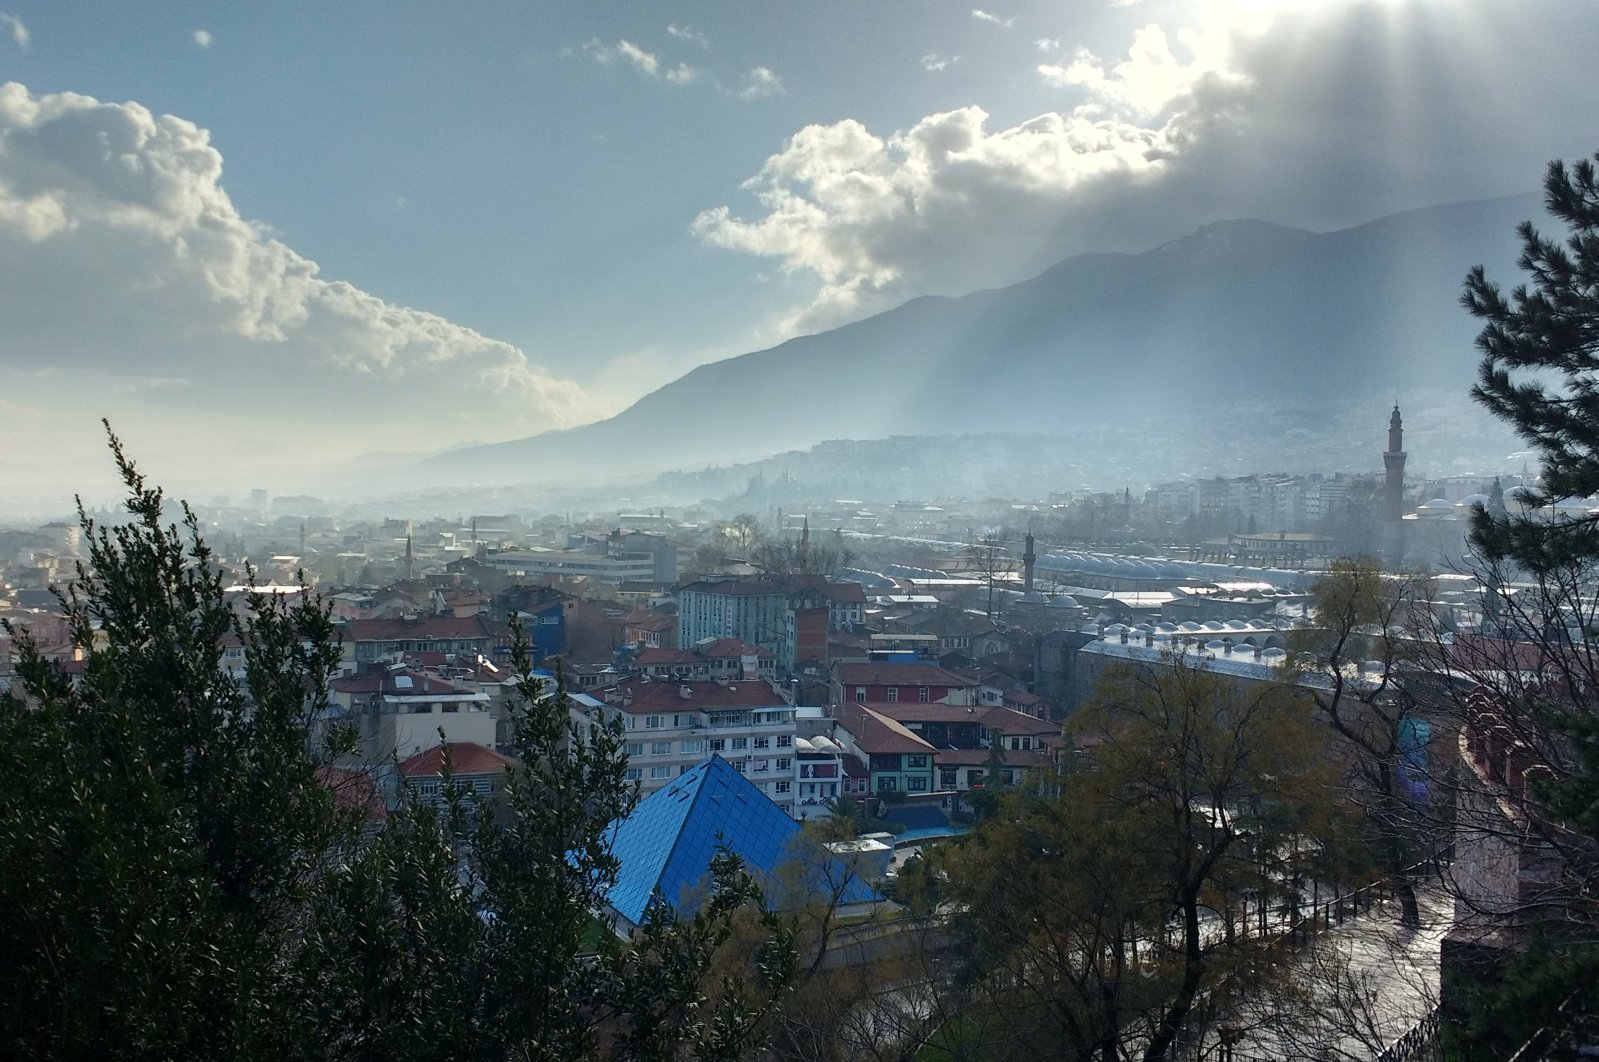 A view of the city of Bursa from the Tombs of Osman and Orhan, northwestern Turkey, Feb. 11, 2018. (Gabriela Akpaça / Daily Sabah)